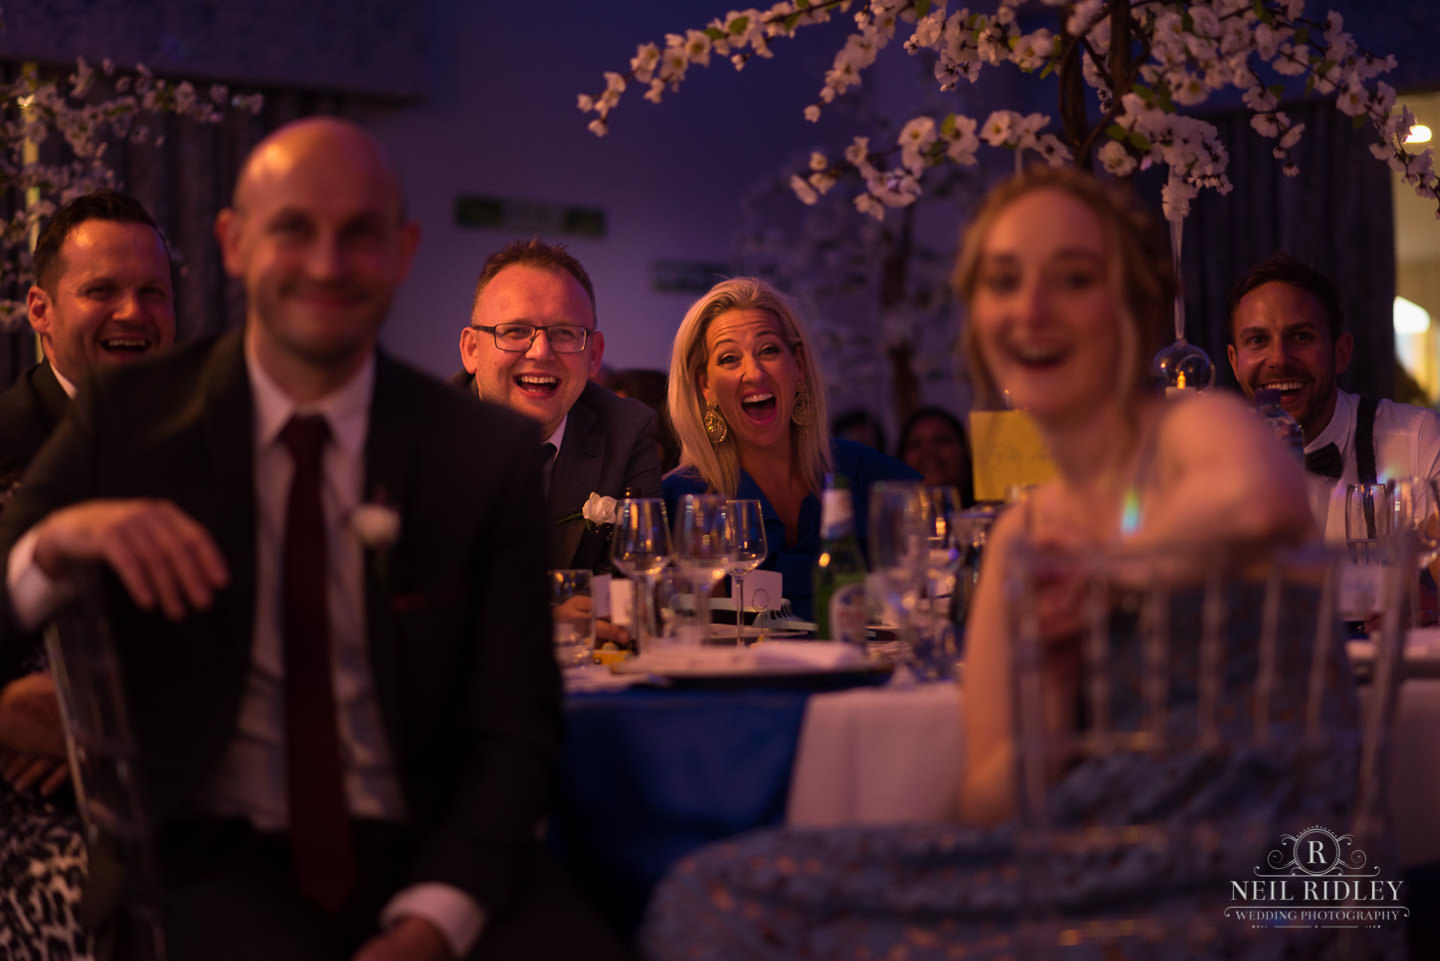 Merrydale Manor Wedding Photographer - Wedding guests laugh during speeches